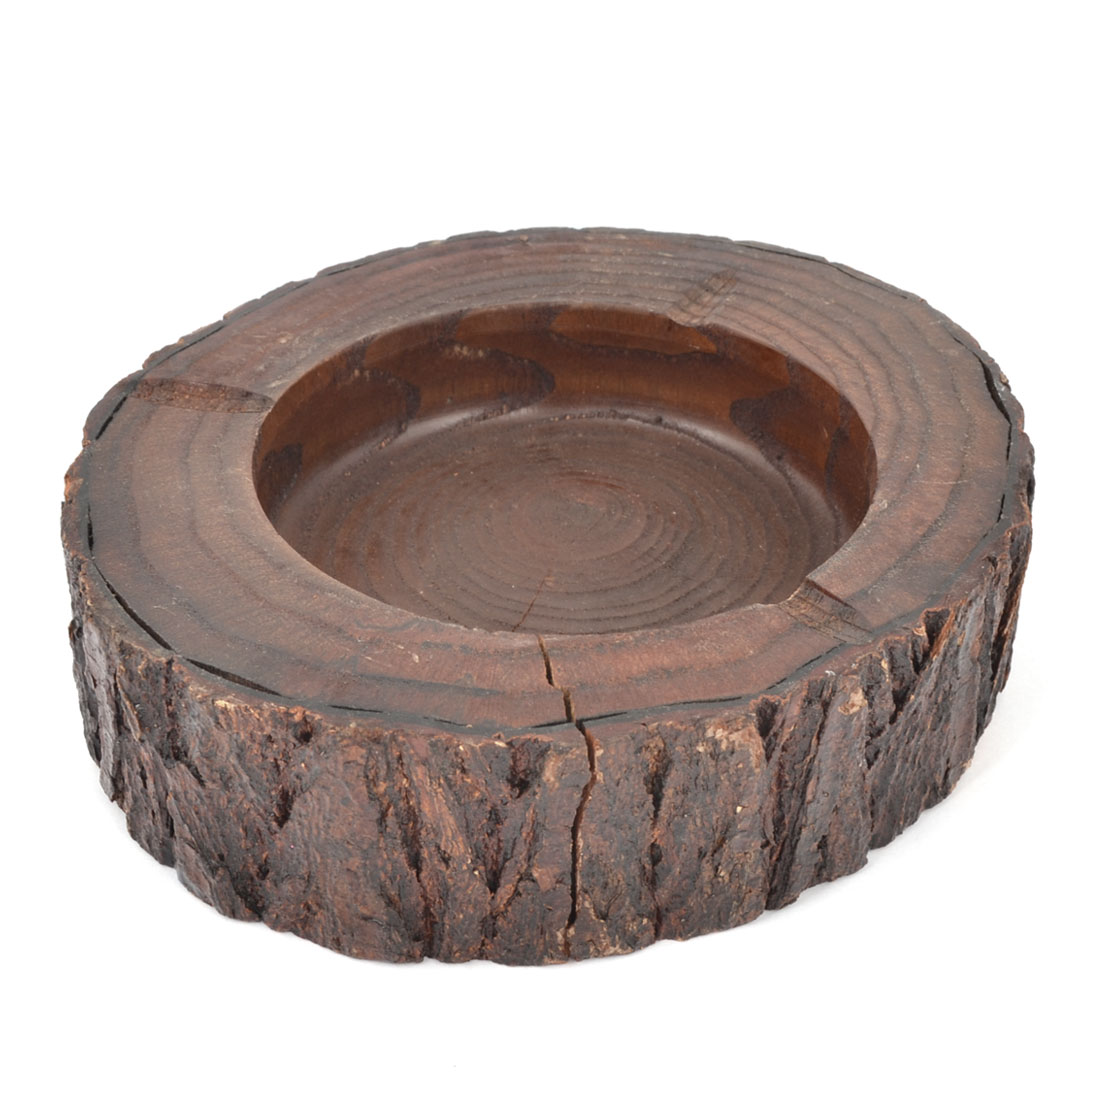 2cm Depth Craft Dark Brown Wood Round Cigarette Ash Tray Stand Dish Holder